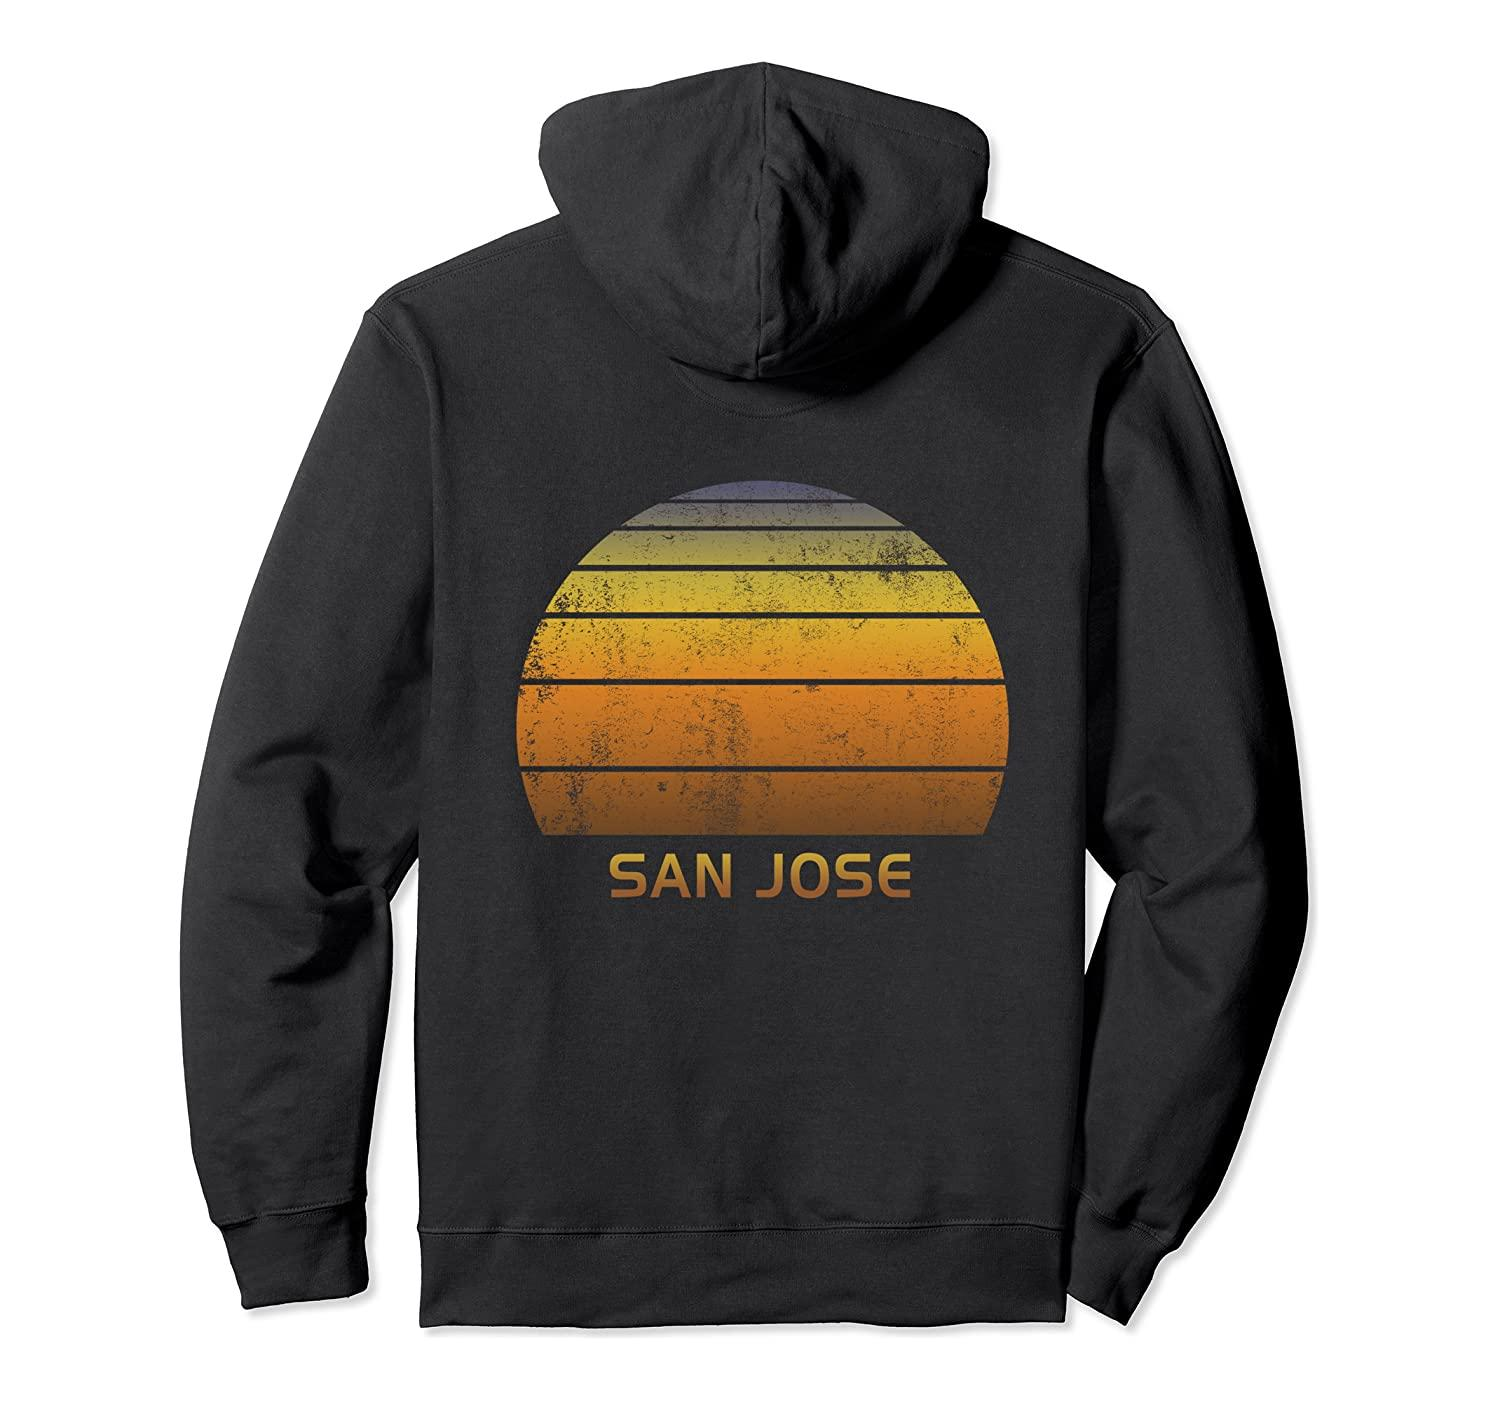 San José en Californie Vintage Sunset Sweat à capuche unisexe Taille S-5XL avec Couleur Noir / Gris / Marine / Bleu Royal / Dark Heather